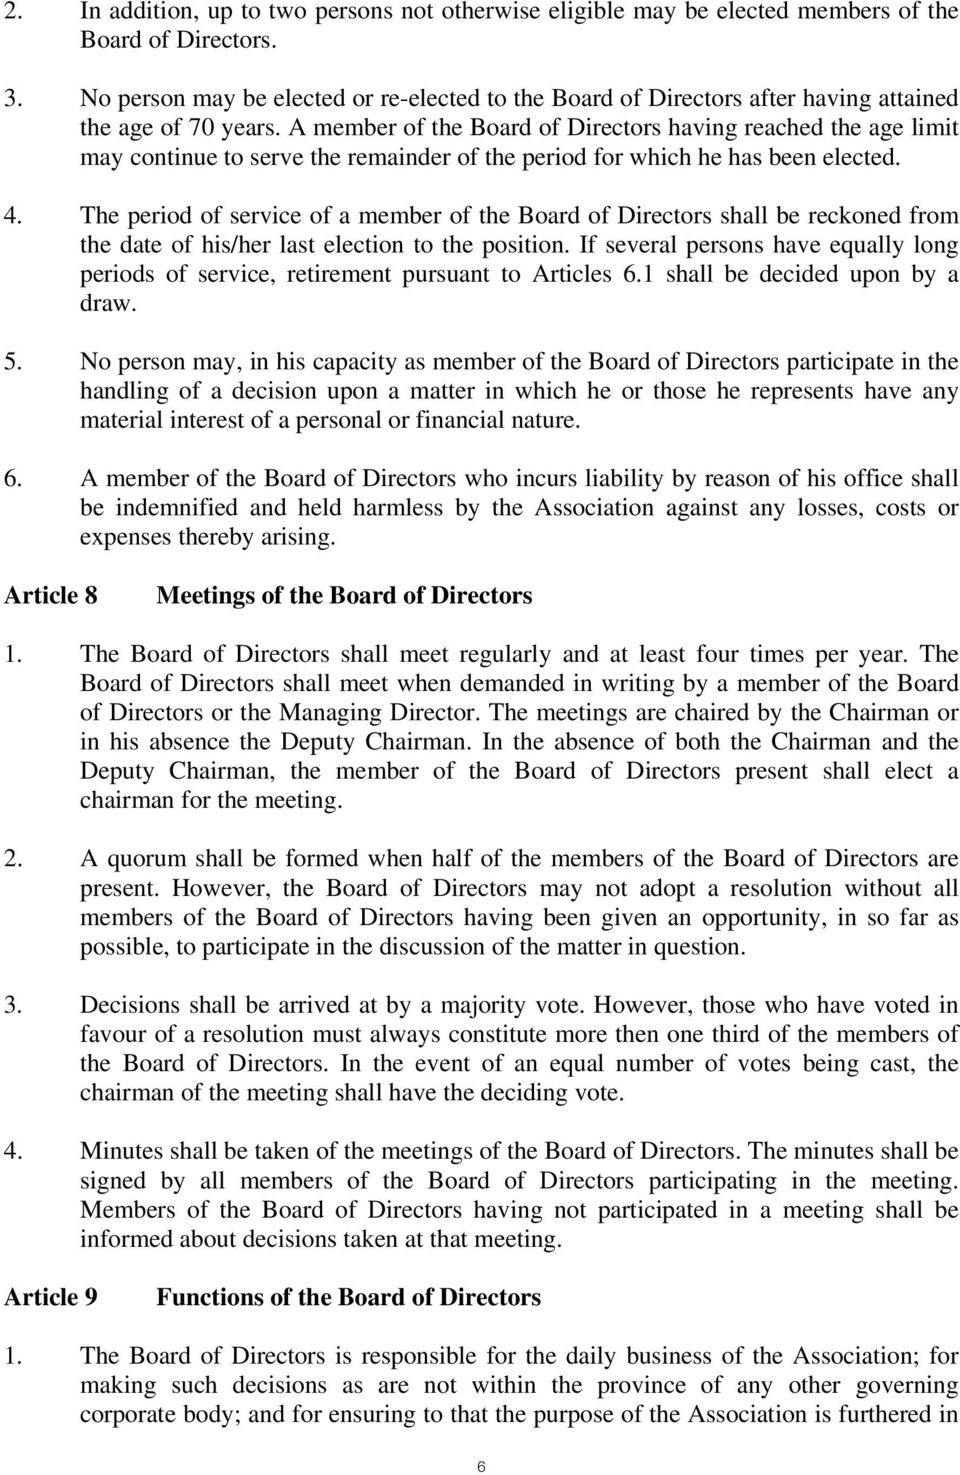 A member of the Board of Directors having reached the age limit may continue to serve the remainder of the period for which he has been elected. 4.